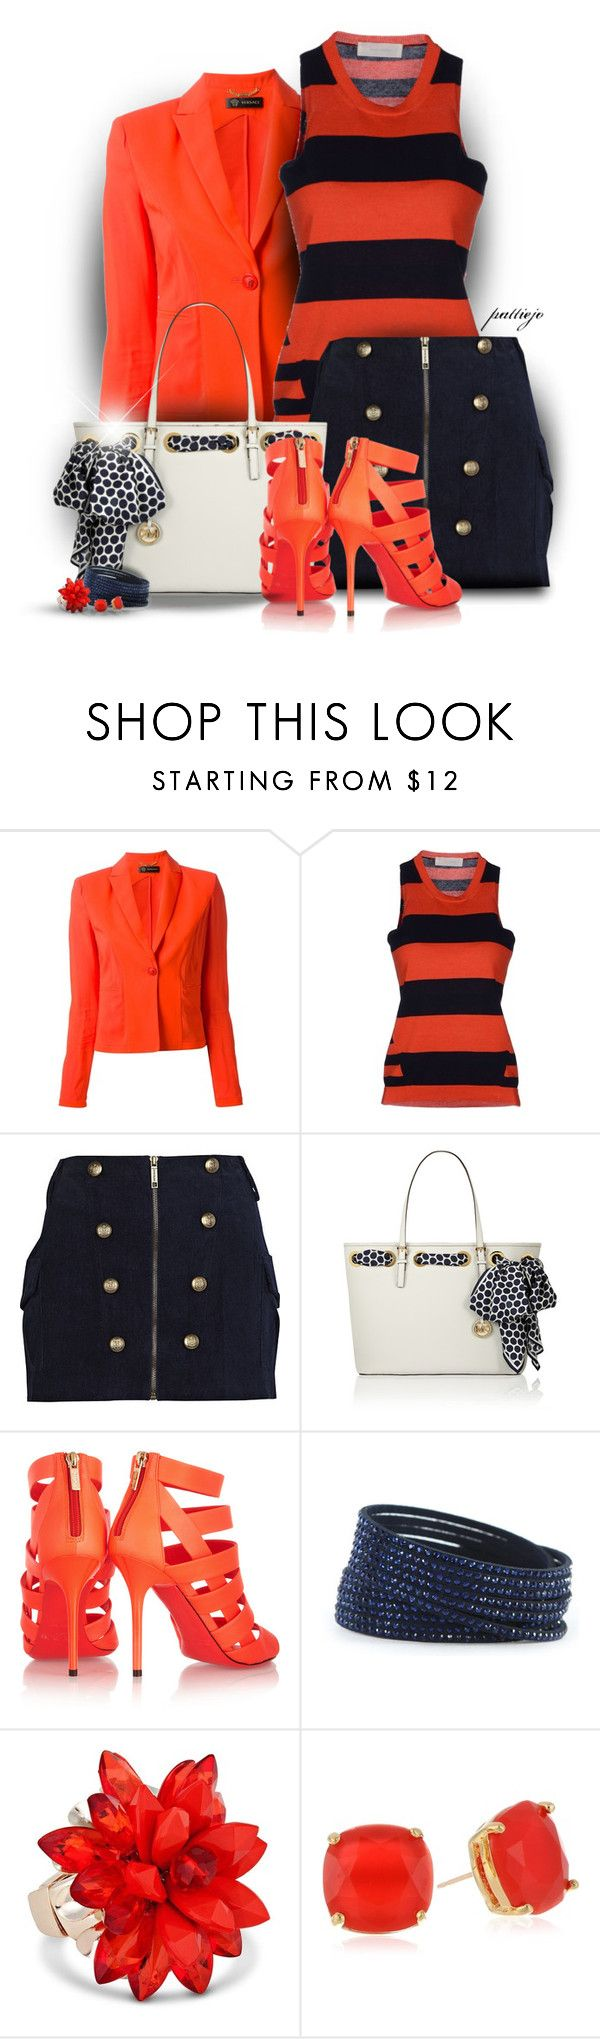 """""""First Mate"""" by rockreborn ❤ liked on Polyvore featuring Versace, Mauro Grifoni, River Island, MICHAEL Michael Kors, Jimmy Choo, Swarovski, Betty Jackson and Kate Spade"""